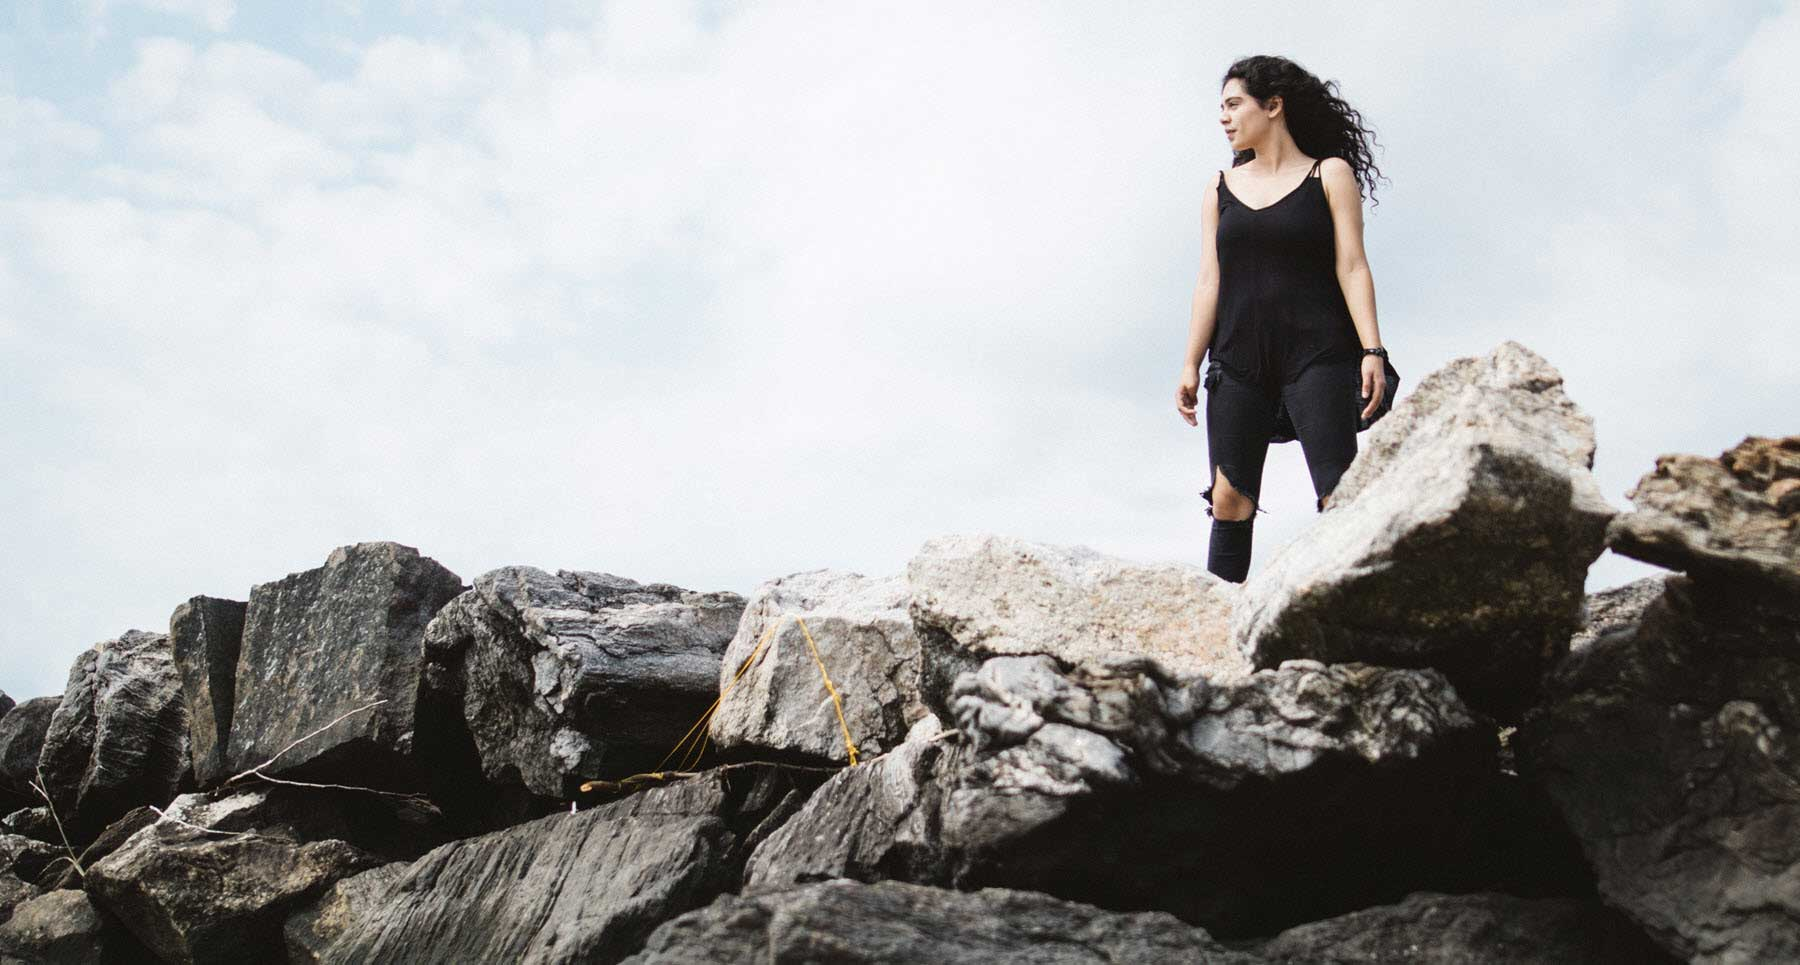 Woman-overcoming-an-eating-disorder-and-self-harm-issue